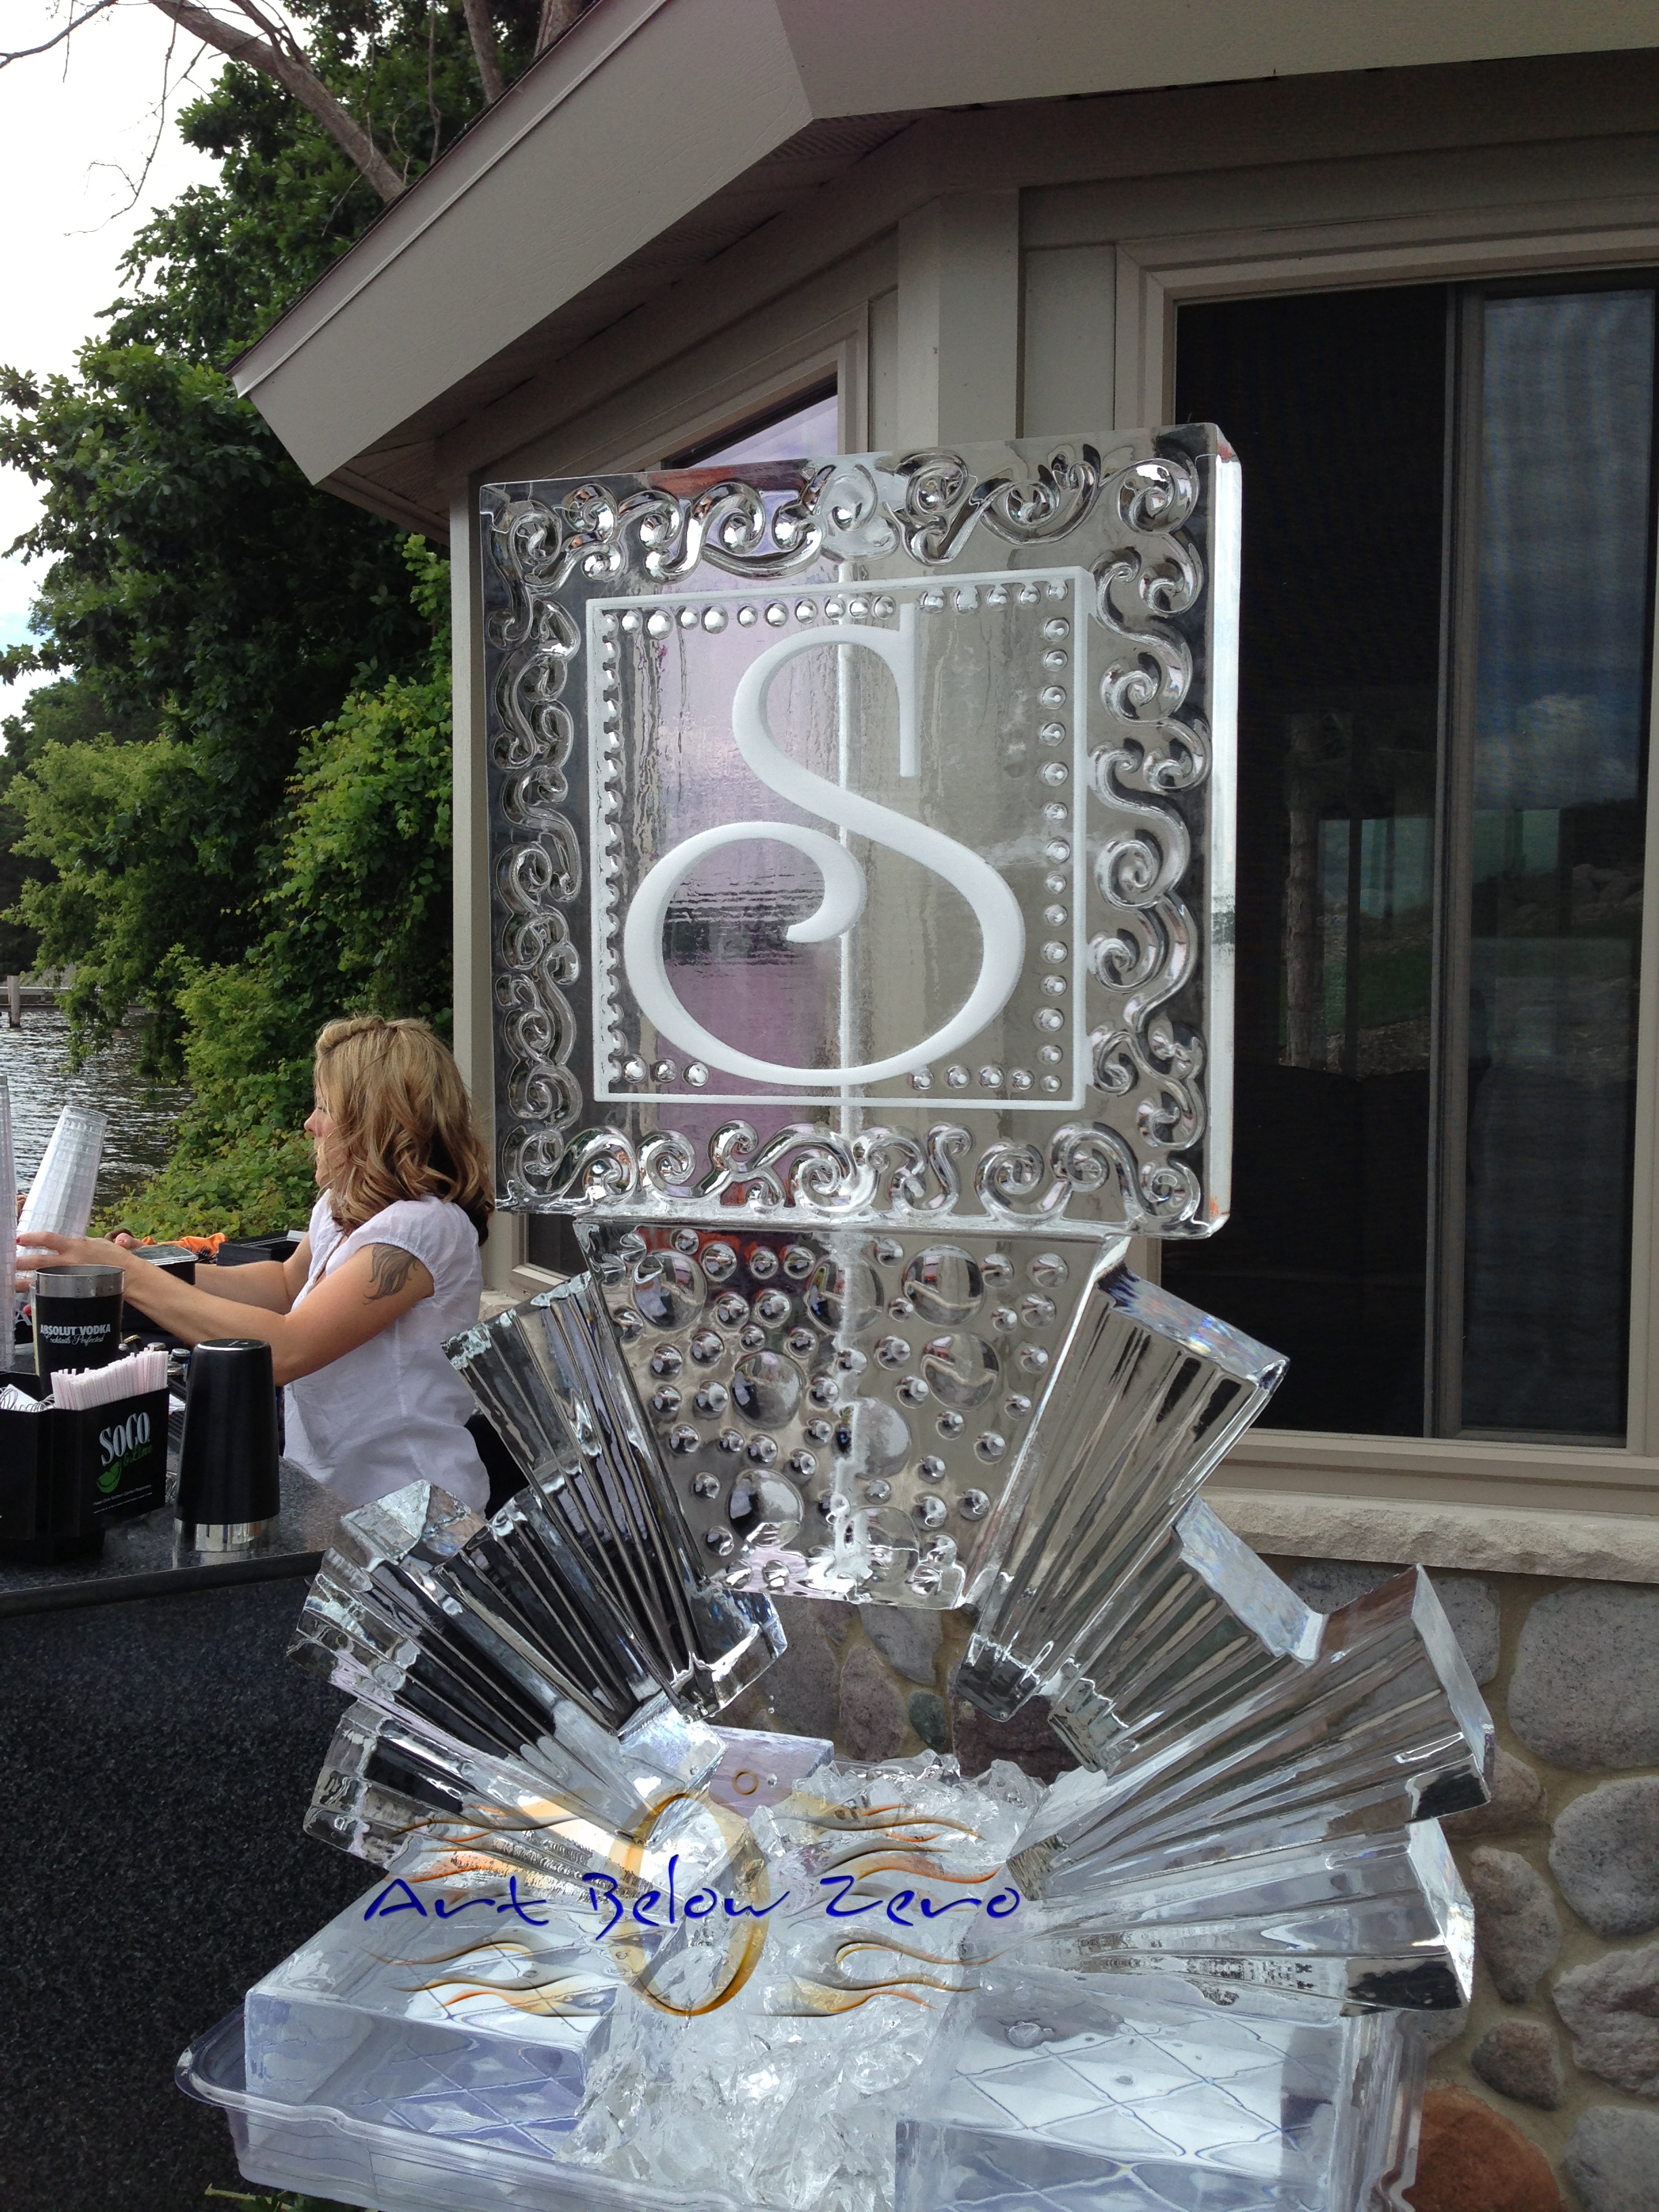 Monogram S martini luge ice sculpture